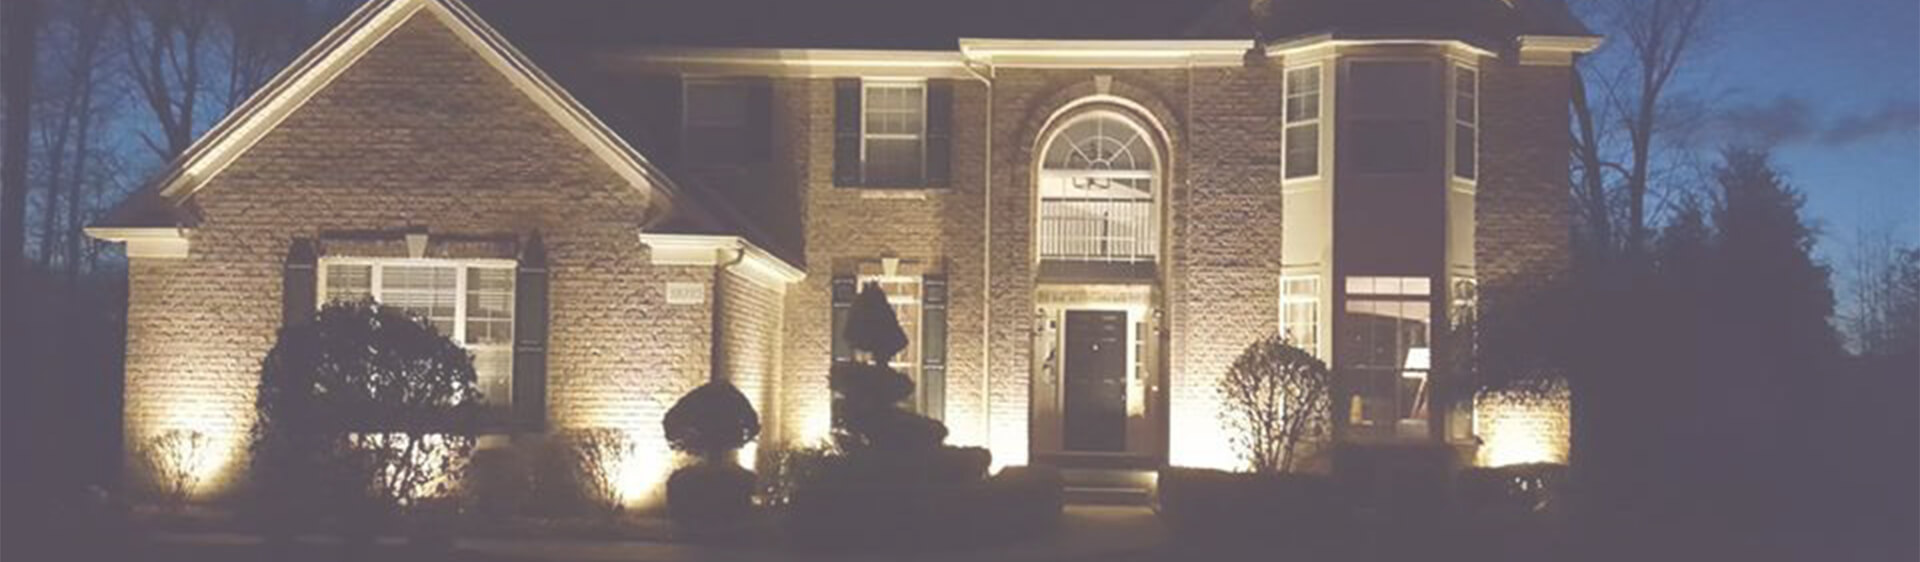 Pepper Pike Landscape Lighting Services, Landscape Lighting Company and Landscape Lighting Design Services